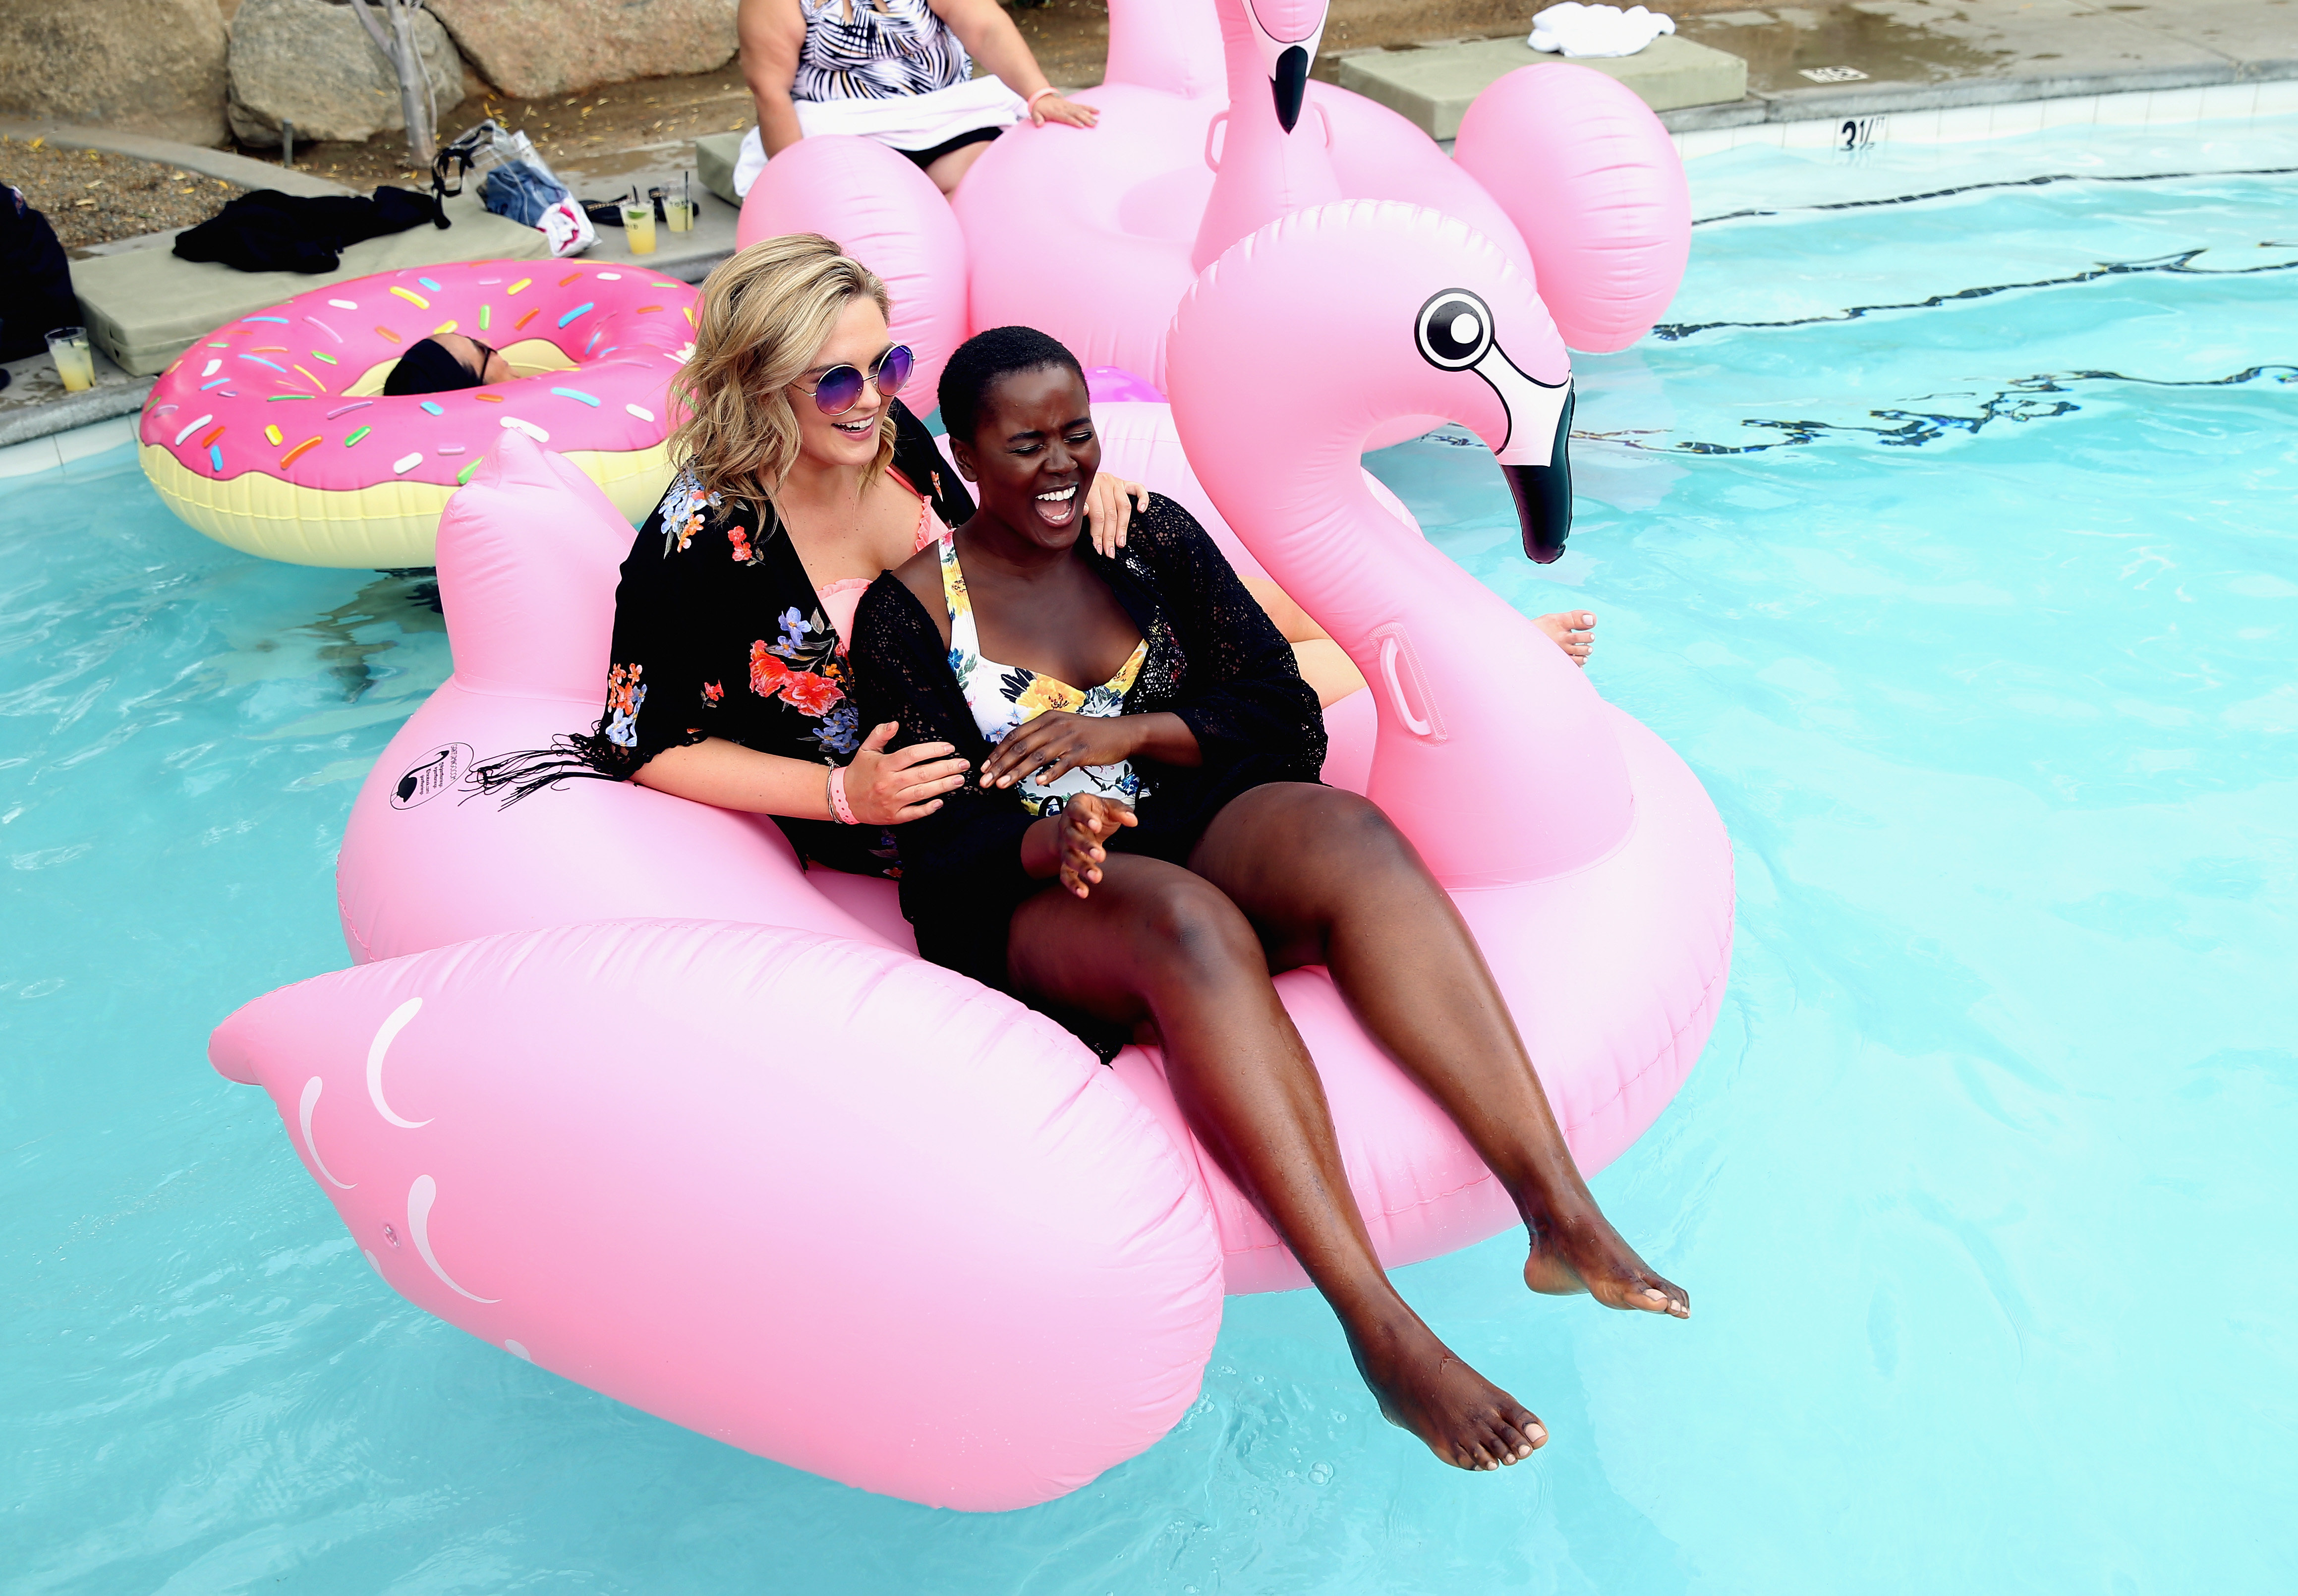 TORRID #OwnIt Pool Party At The Commune Ace Hotel Palm Springs